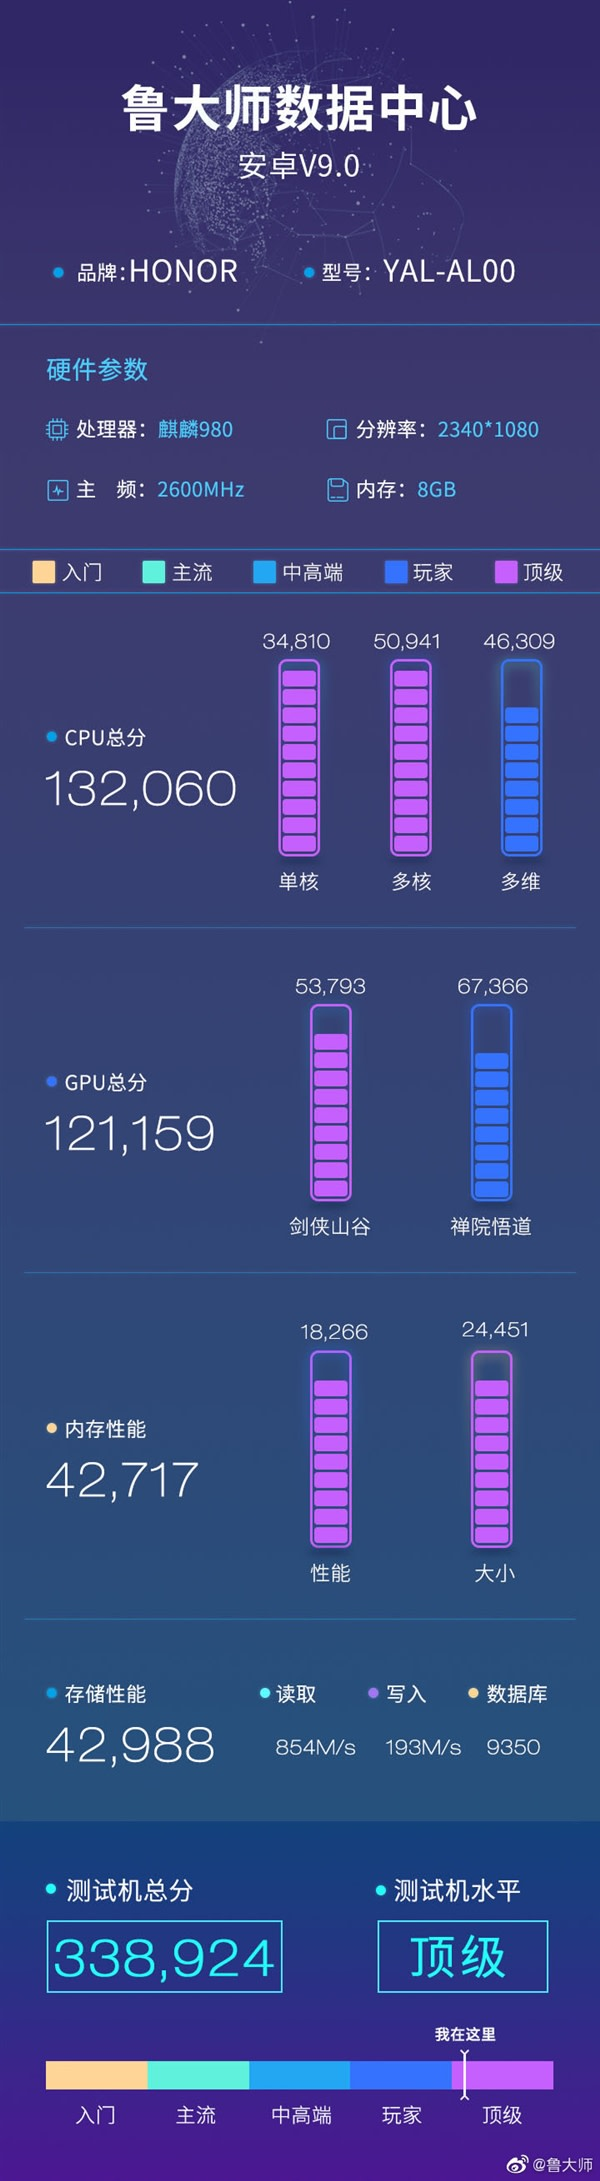 Honor 20 MasterLu Benchmarks